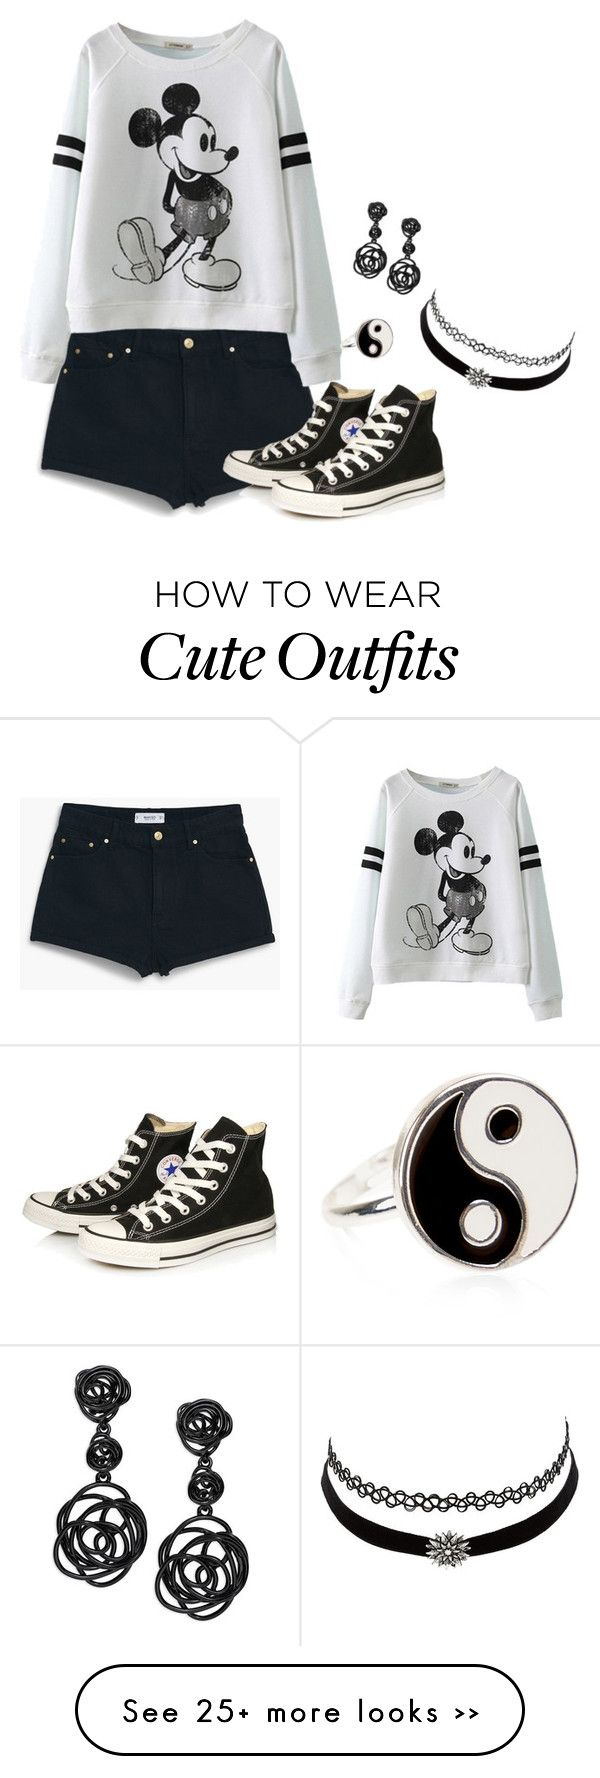 """""""Outfit of the Day 6/29"""" by caedyn2000 on Polyvore"""